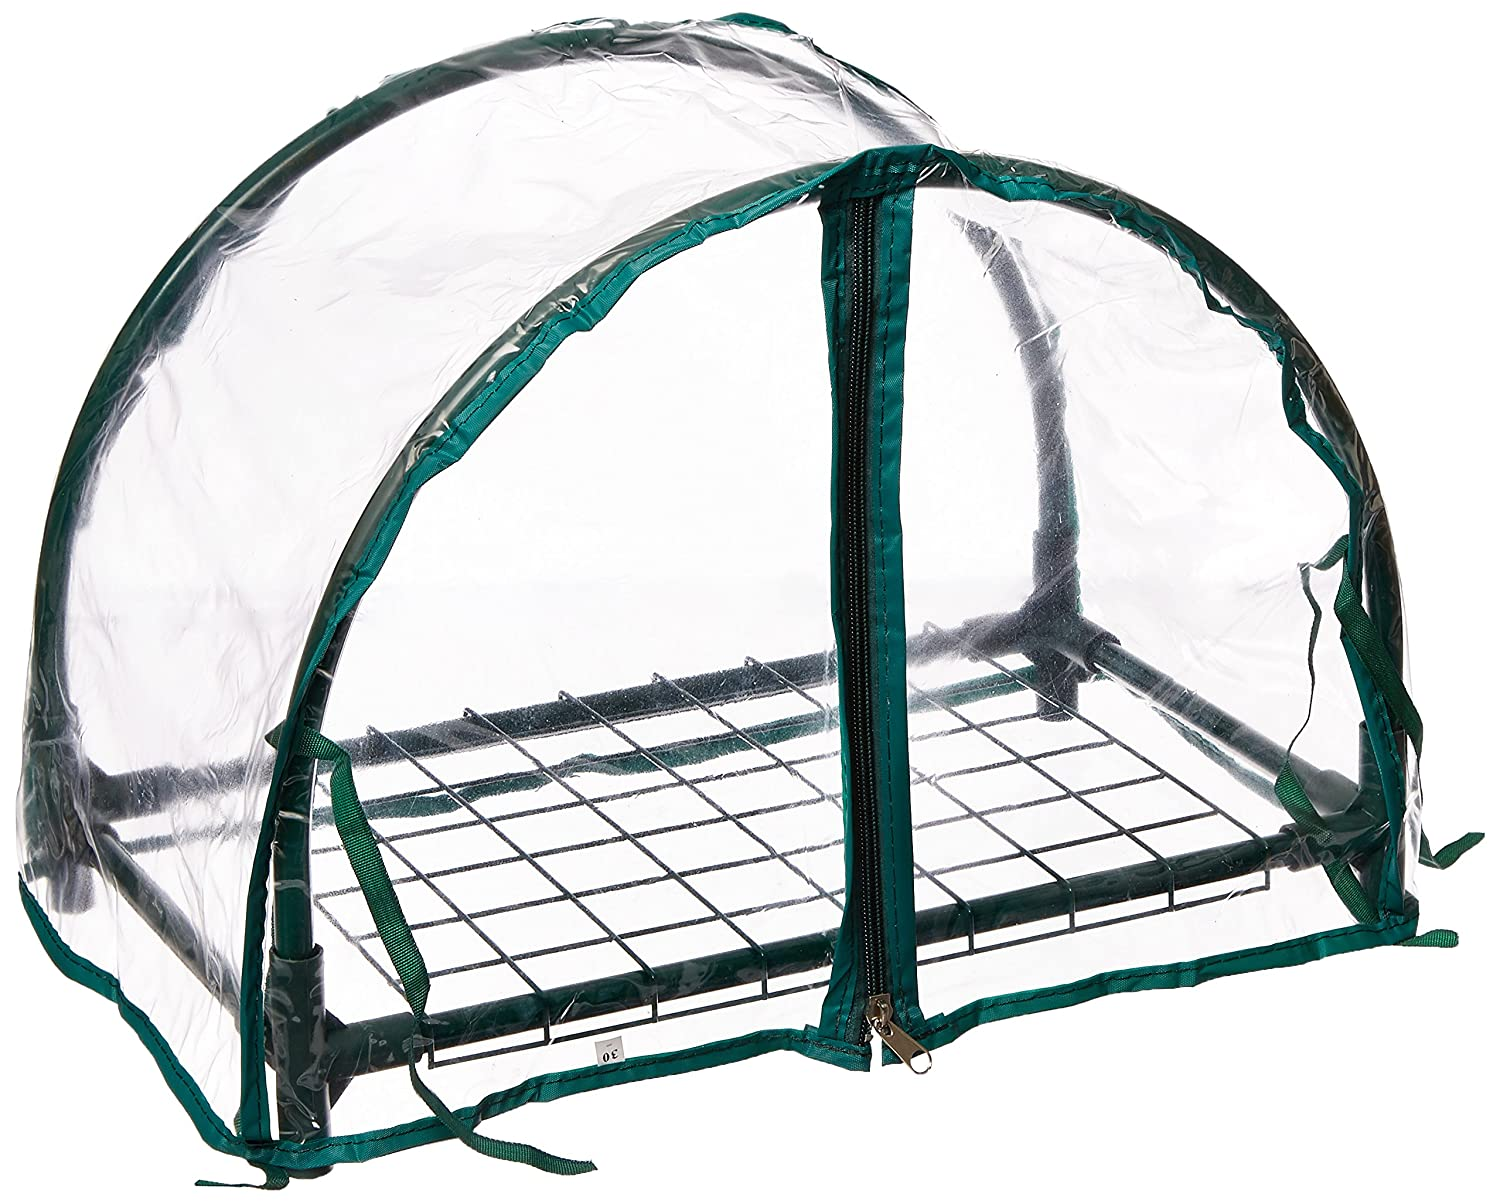 Amazon.com : Zenport SH3270 12.5 1 Foot High Balcony Greenhouse For  Protected Patio, Mini : Garden U0026 Outdoor